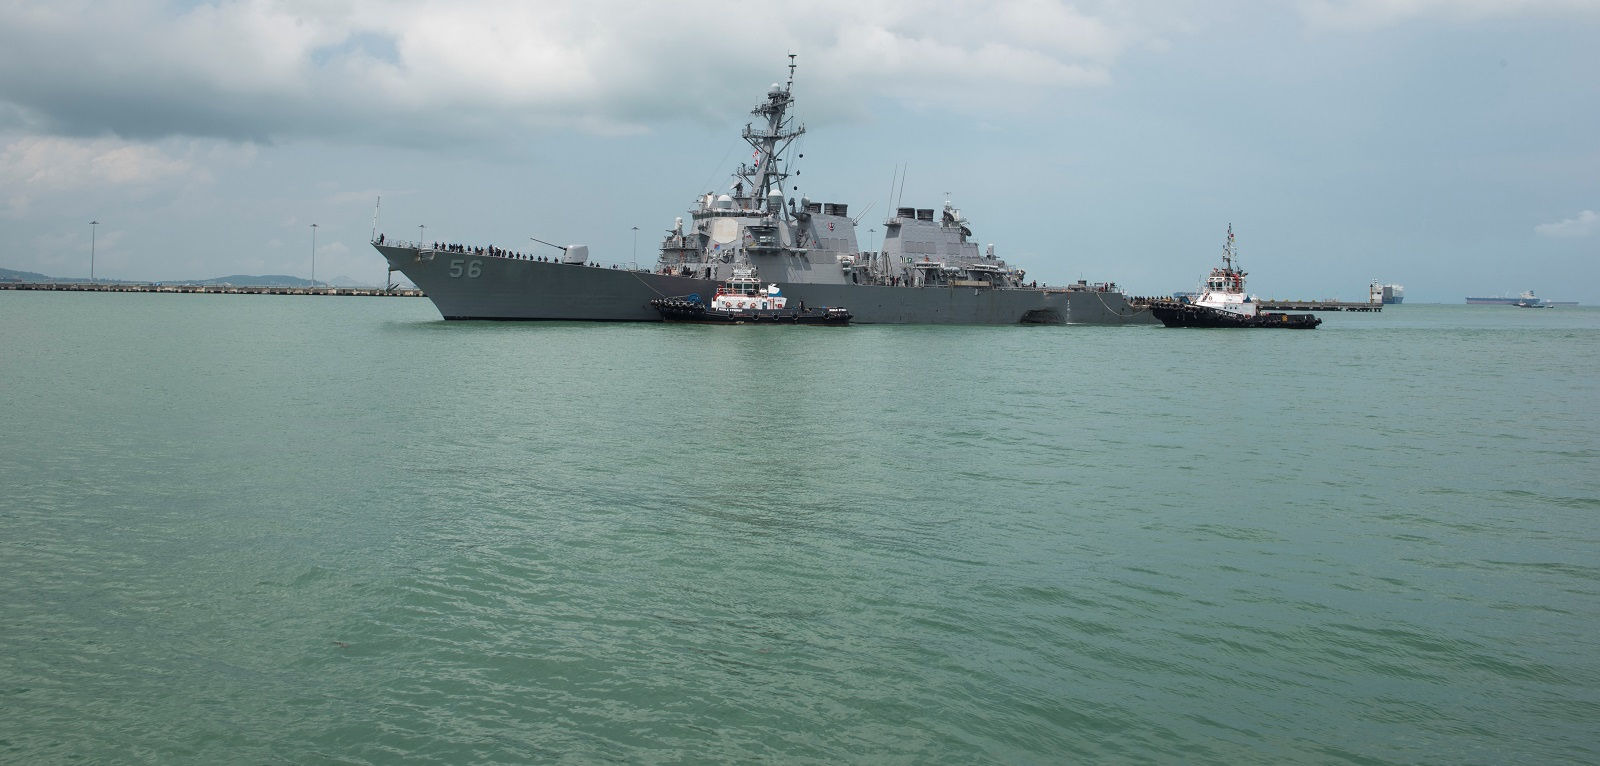 Tugboats assist the USS John S. McCain as it steers towards Changi Naval Base following the 21 August collision with a merchant vessel. (Photo: US Navy via Getty Images)